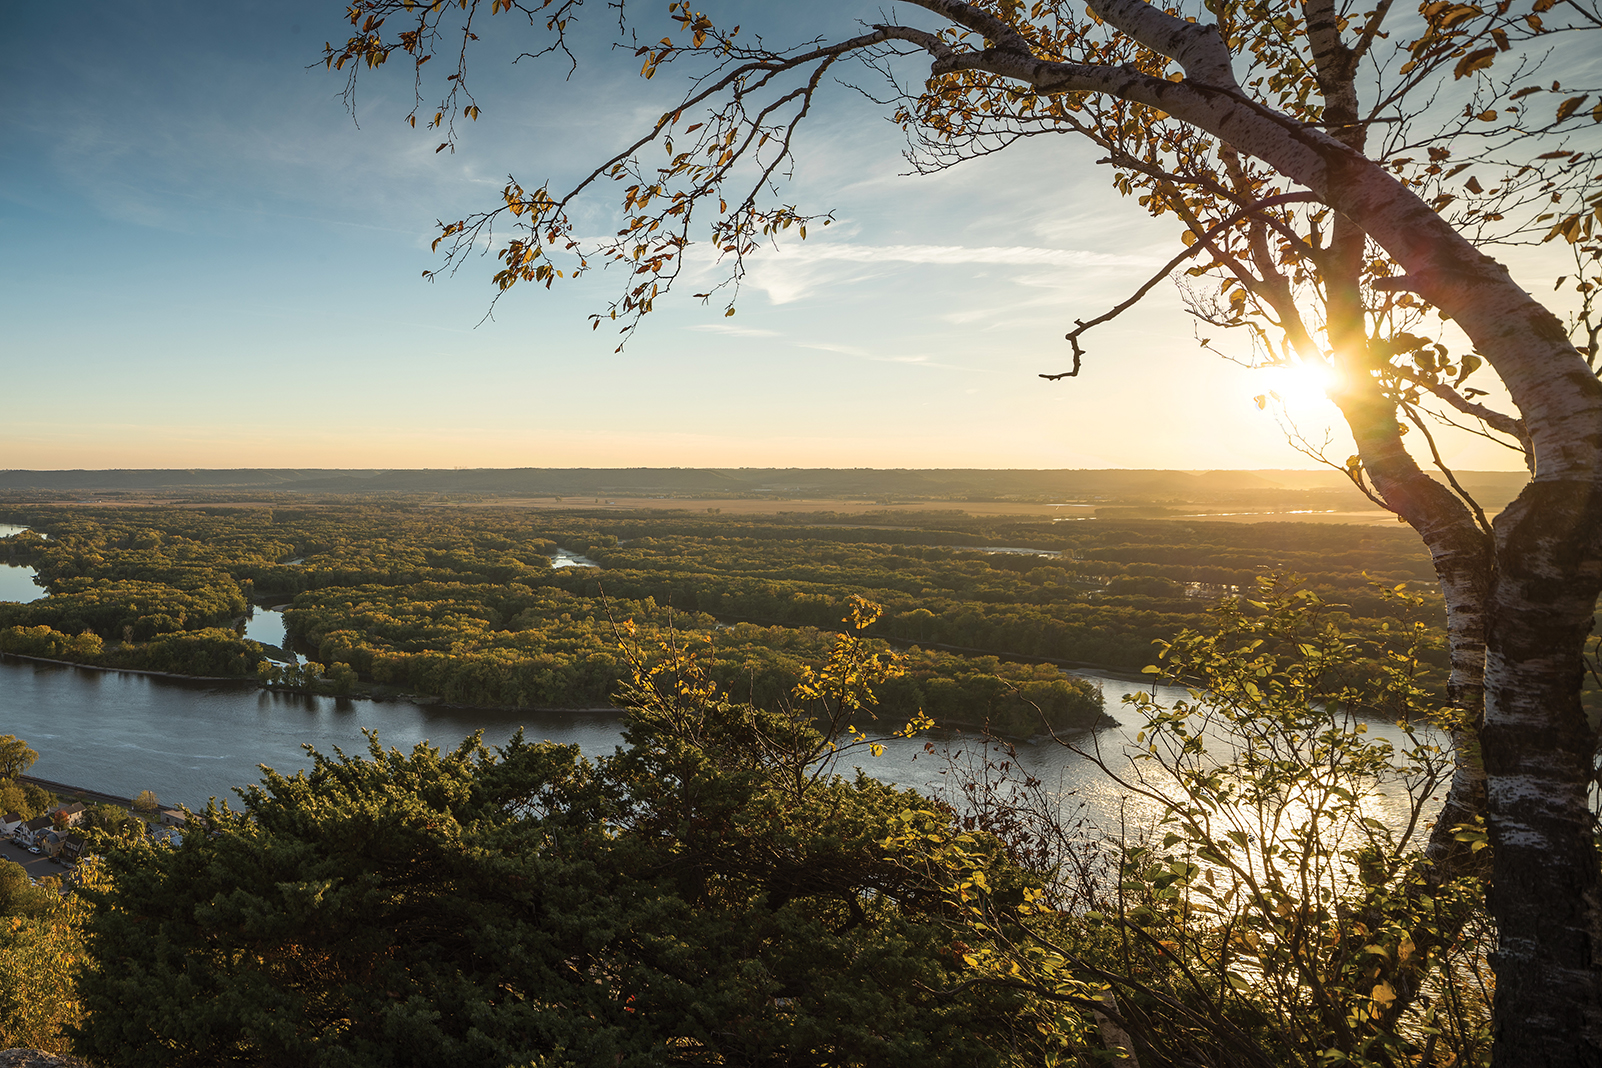 Buena Vista Park overlooking the Mississippi River